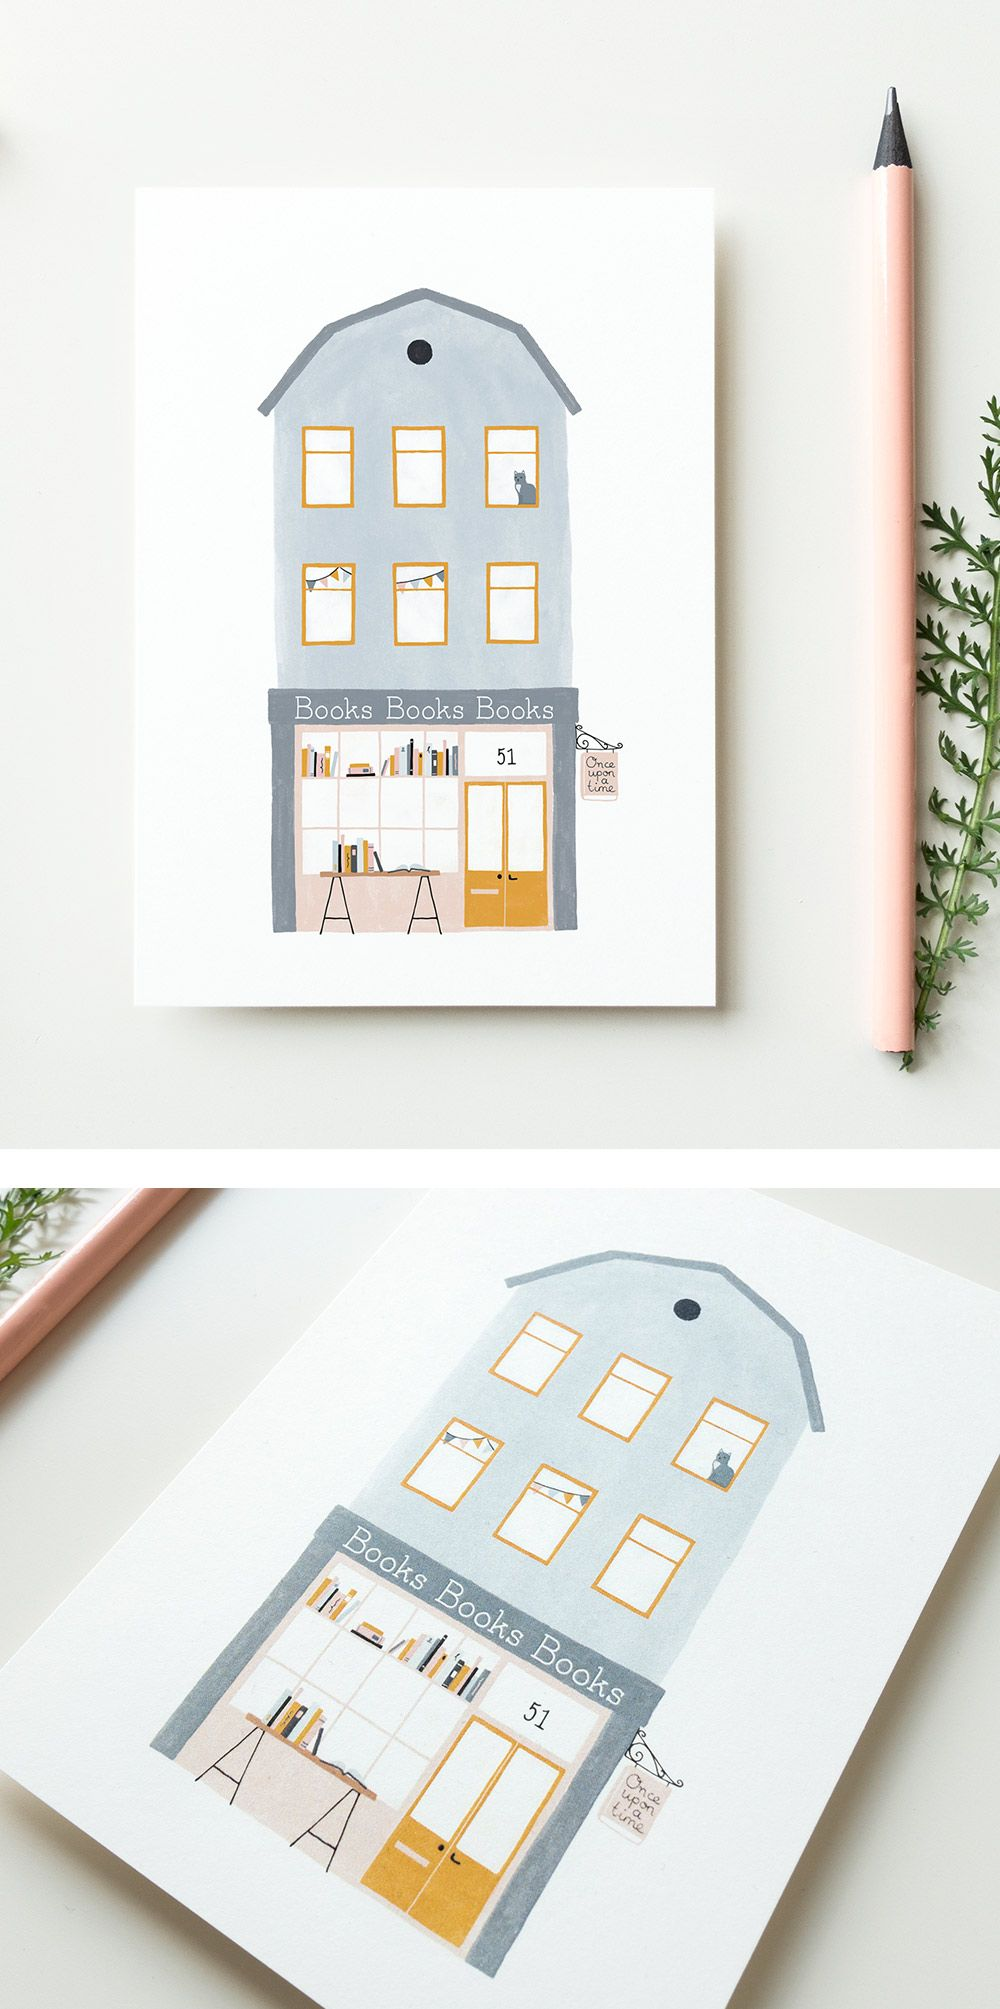 Book Illustration Postcard Little Library Art Print Gift for Book Lovers Writers Readers Cute Watercolor Artwork NaNoWriMo Card